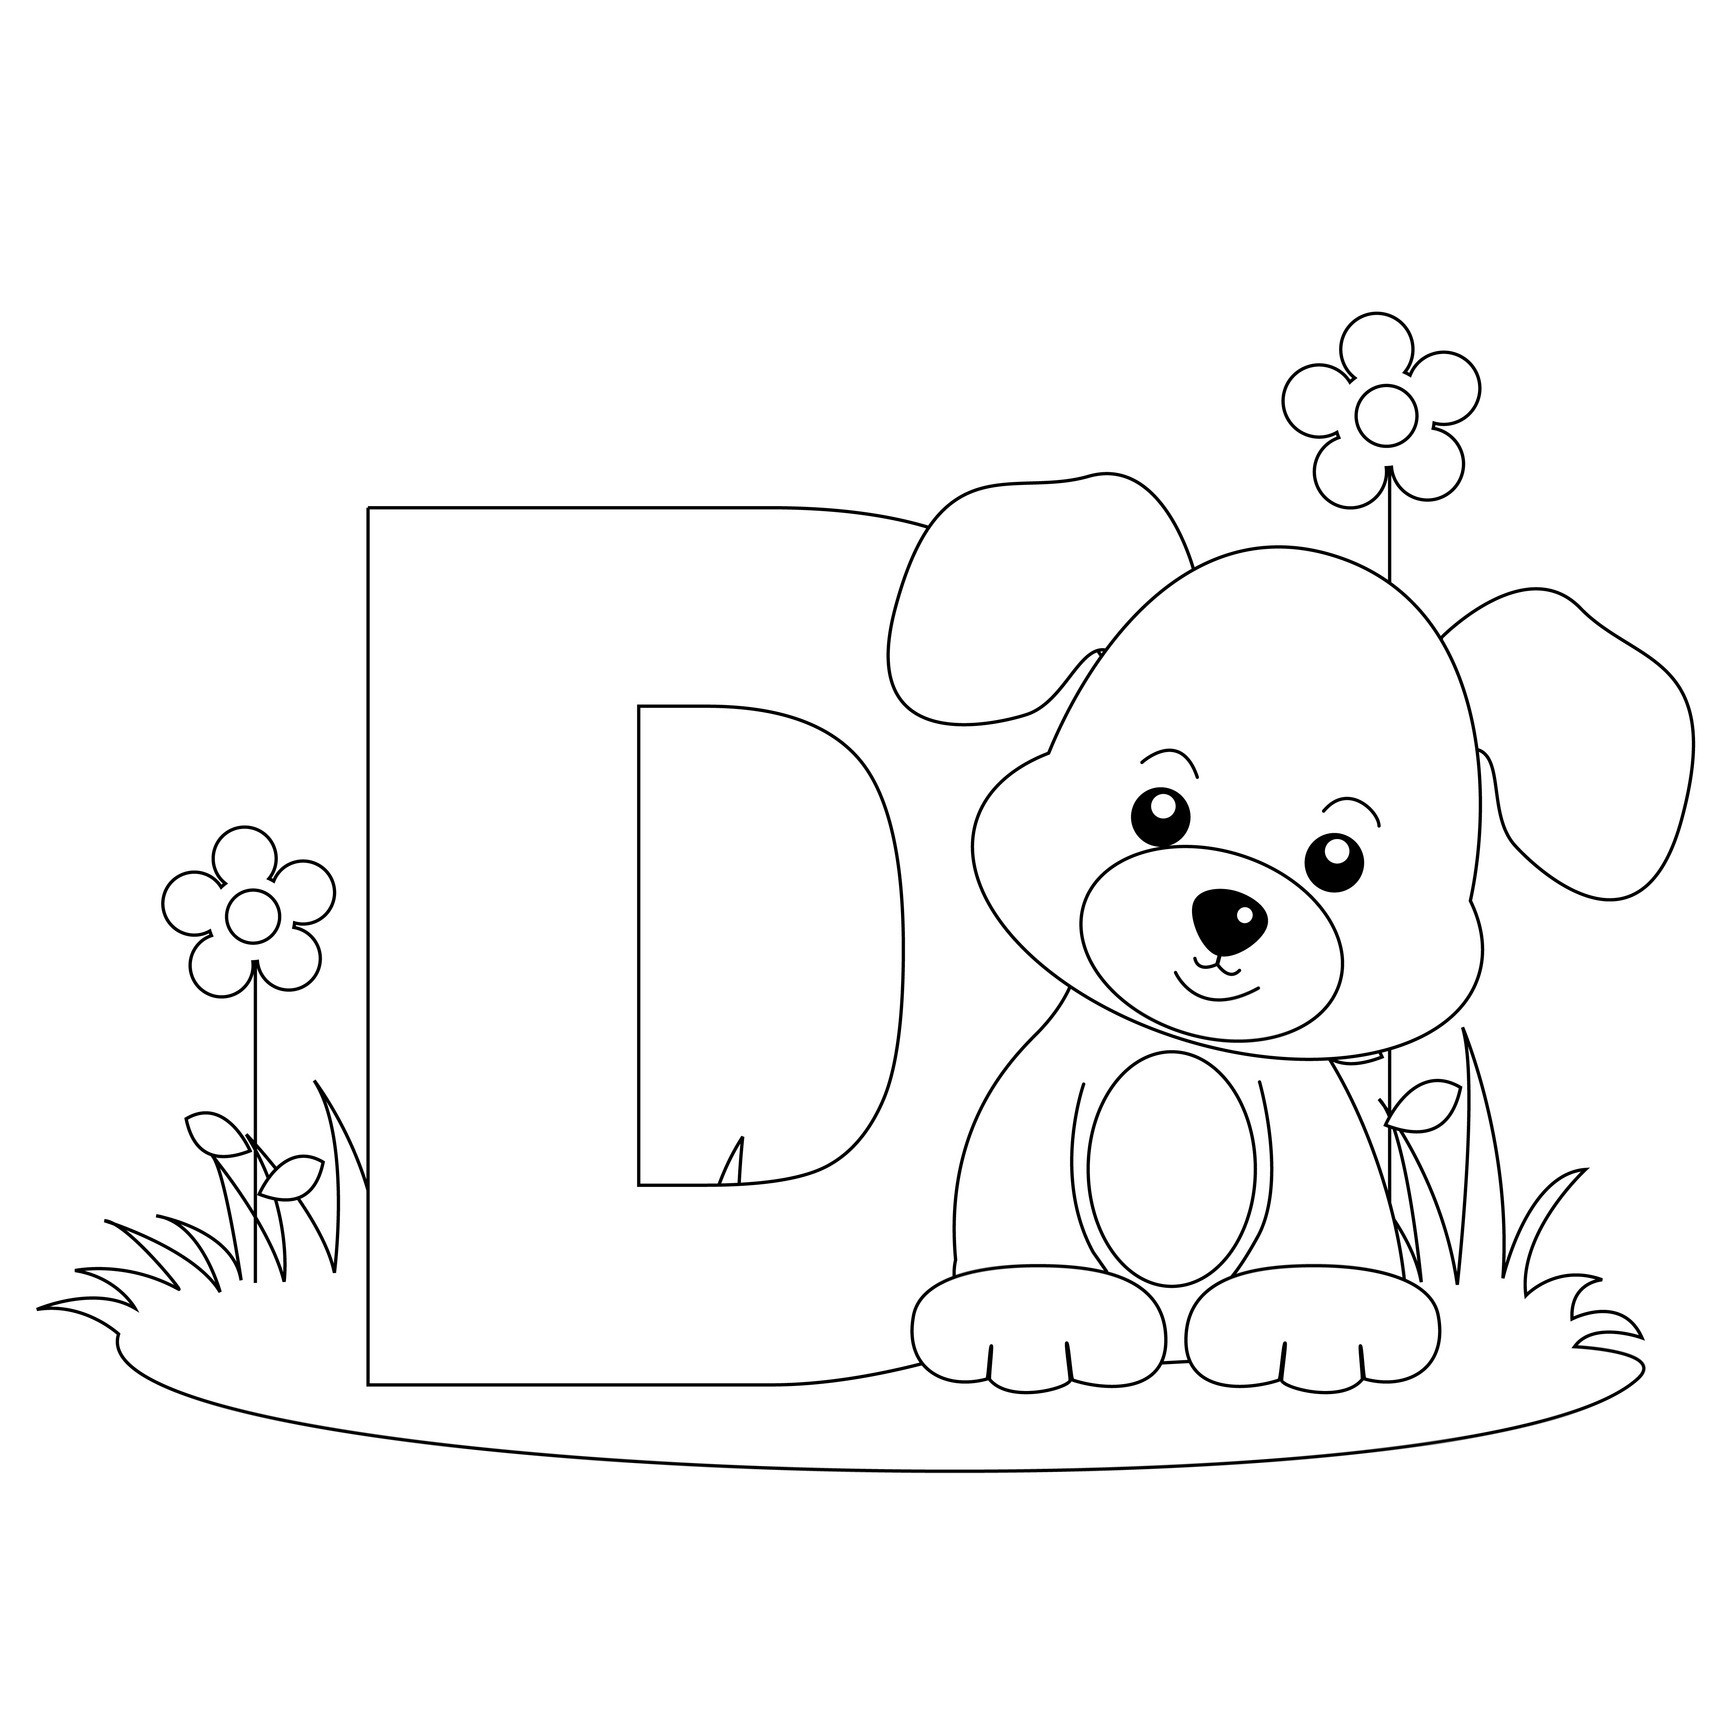 Cartoon Alphabet Coloring Pages Valid Free Printable Alphabet - Free Printable Alphabet Coloring Pages